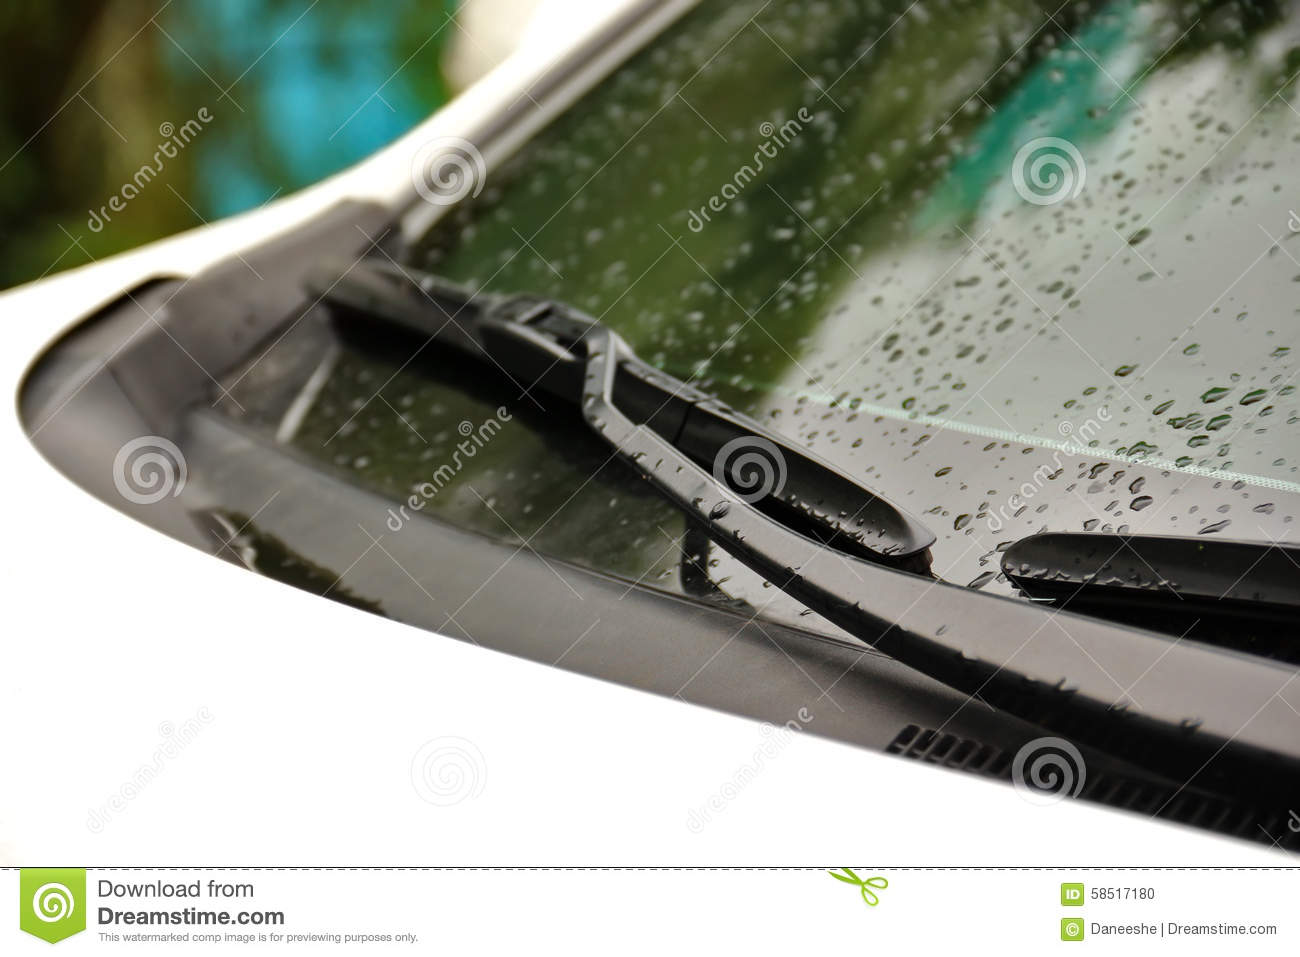 wipers on windshield of car close up on rainy day stock photo image 58517180. Black Bedroom Furniture Sets. Home Design Ideas